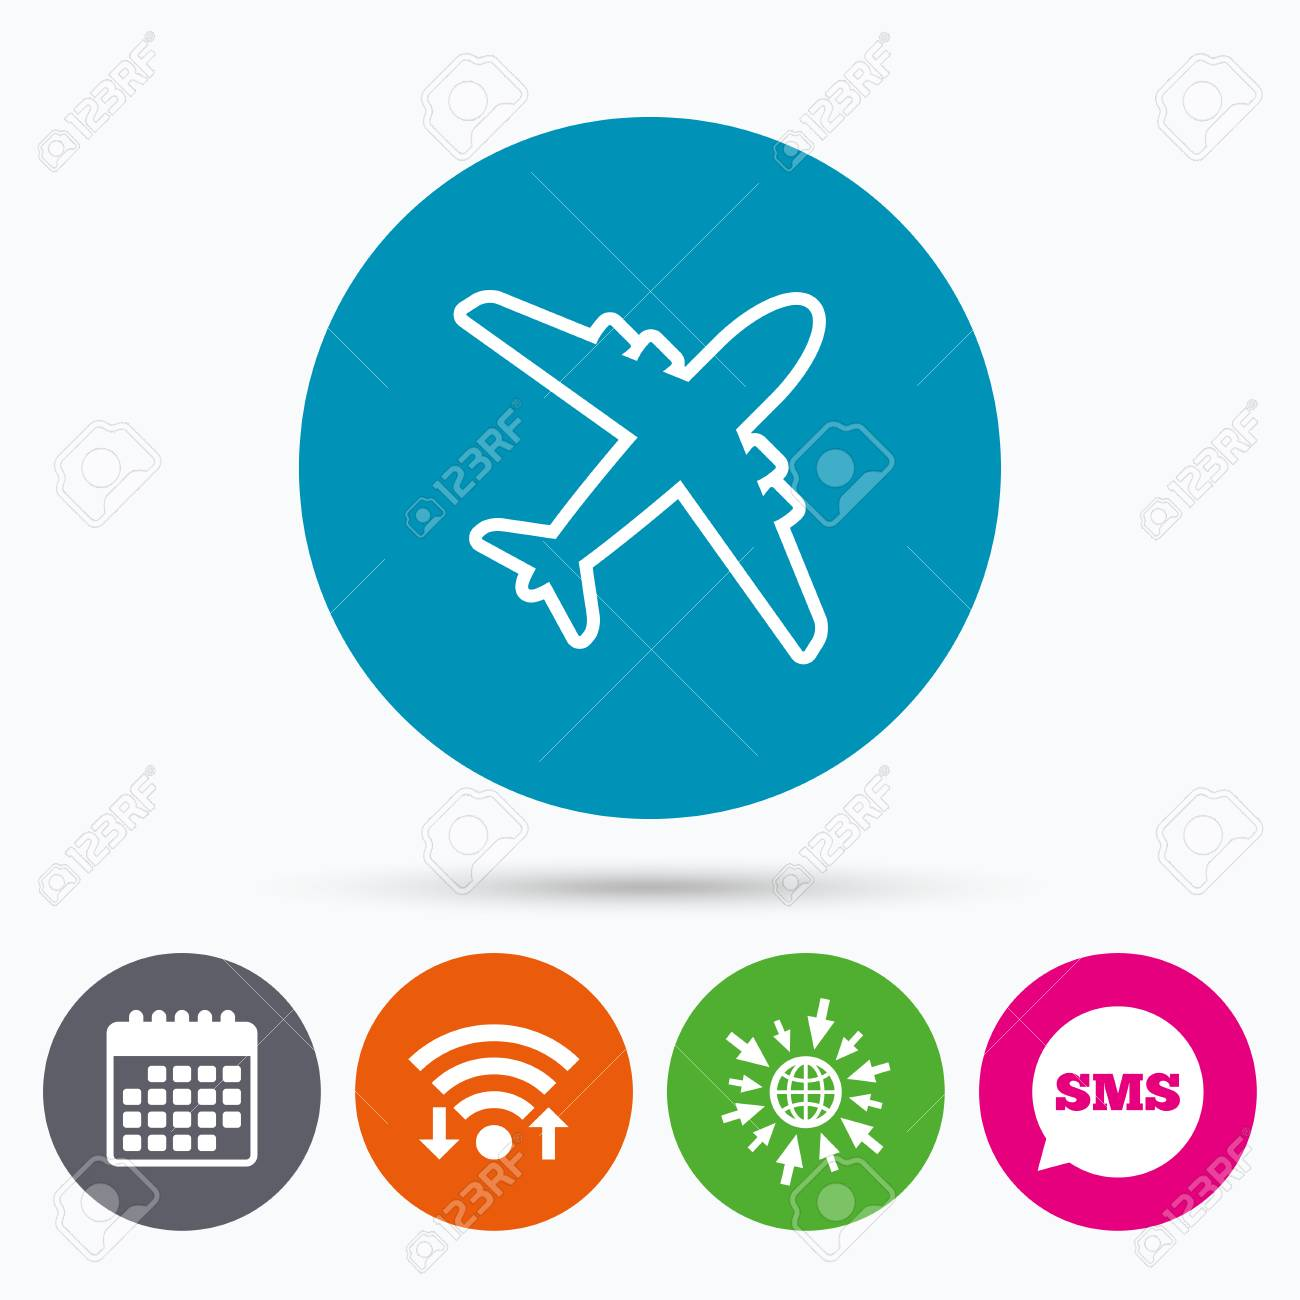 Wifi Sms And Calendar Icons Airplane Sign Plane Symbol Travel